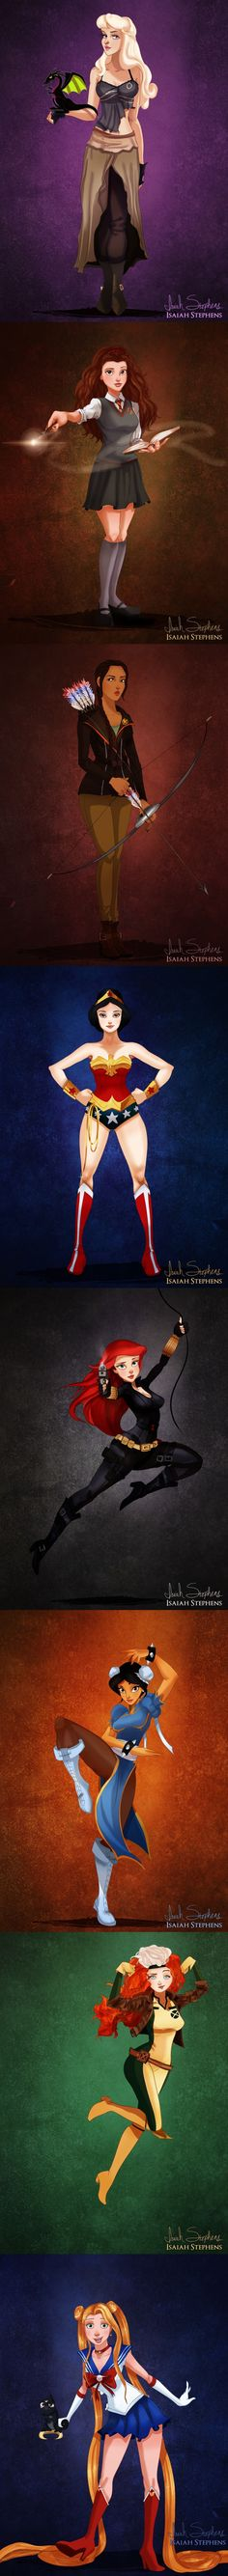 disney princesses in halloween costumes from pop culture. I can't express enough how much I love this!